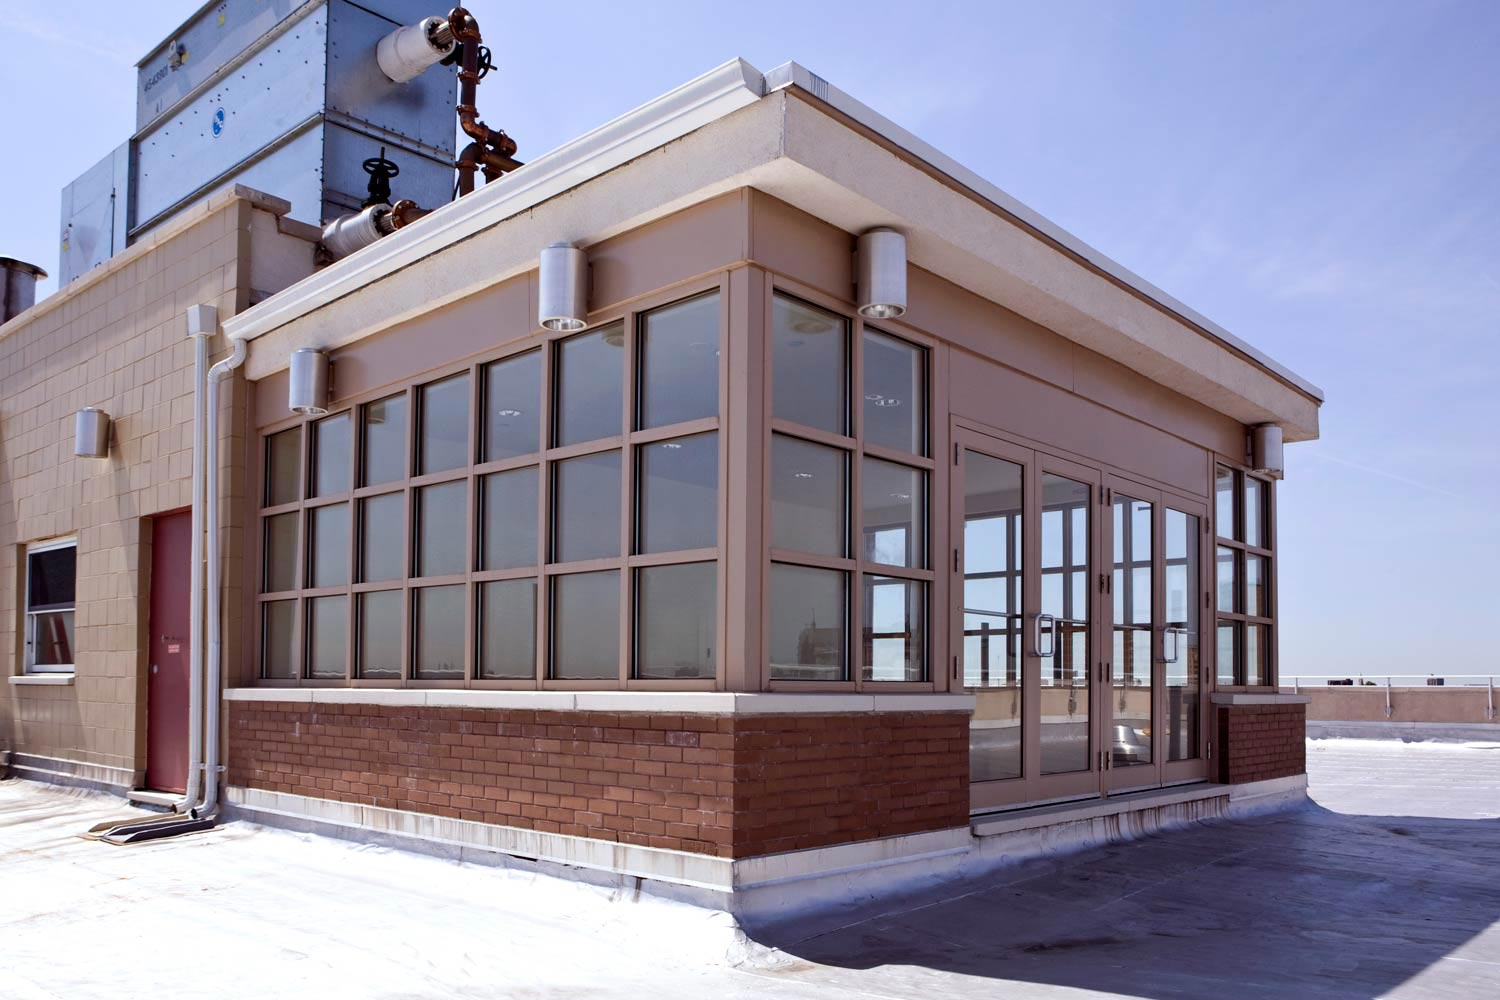 A glass enclosed rooftop community room tops off the new construction addition.